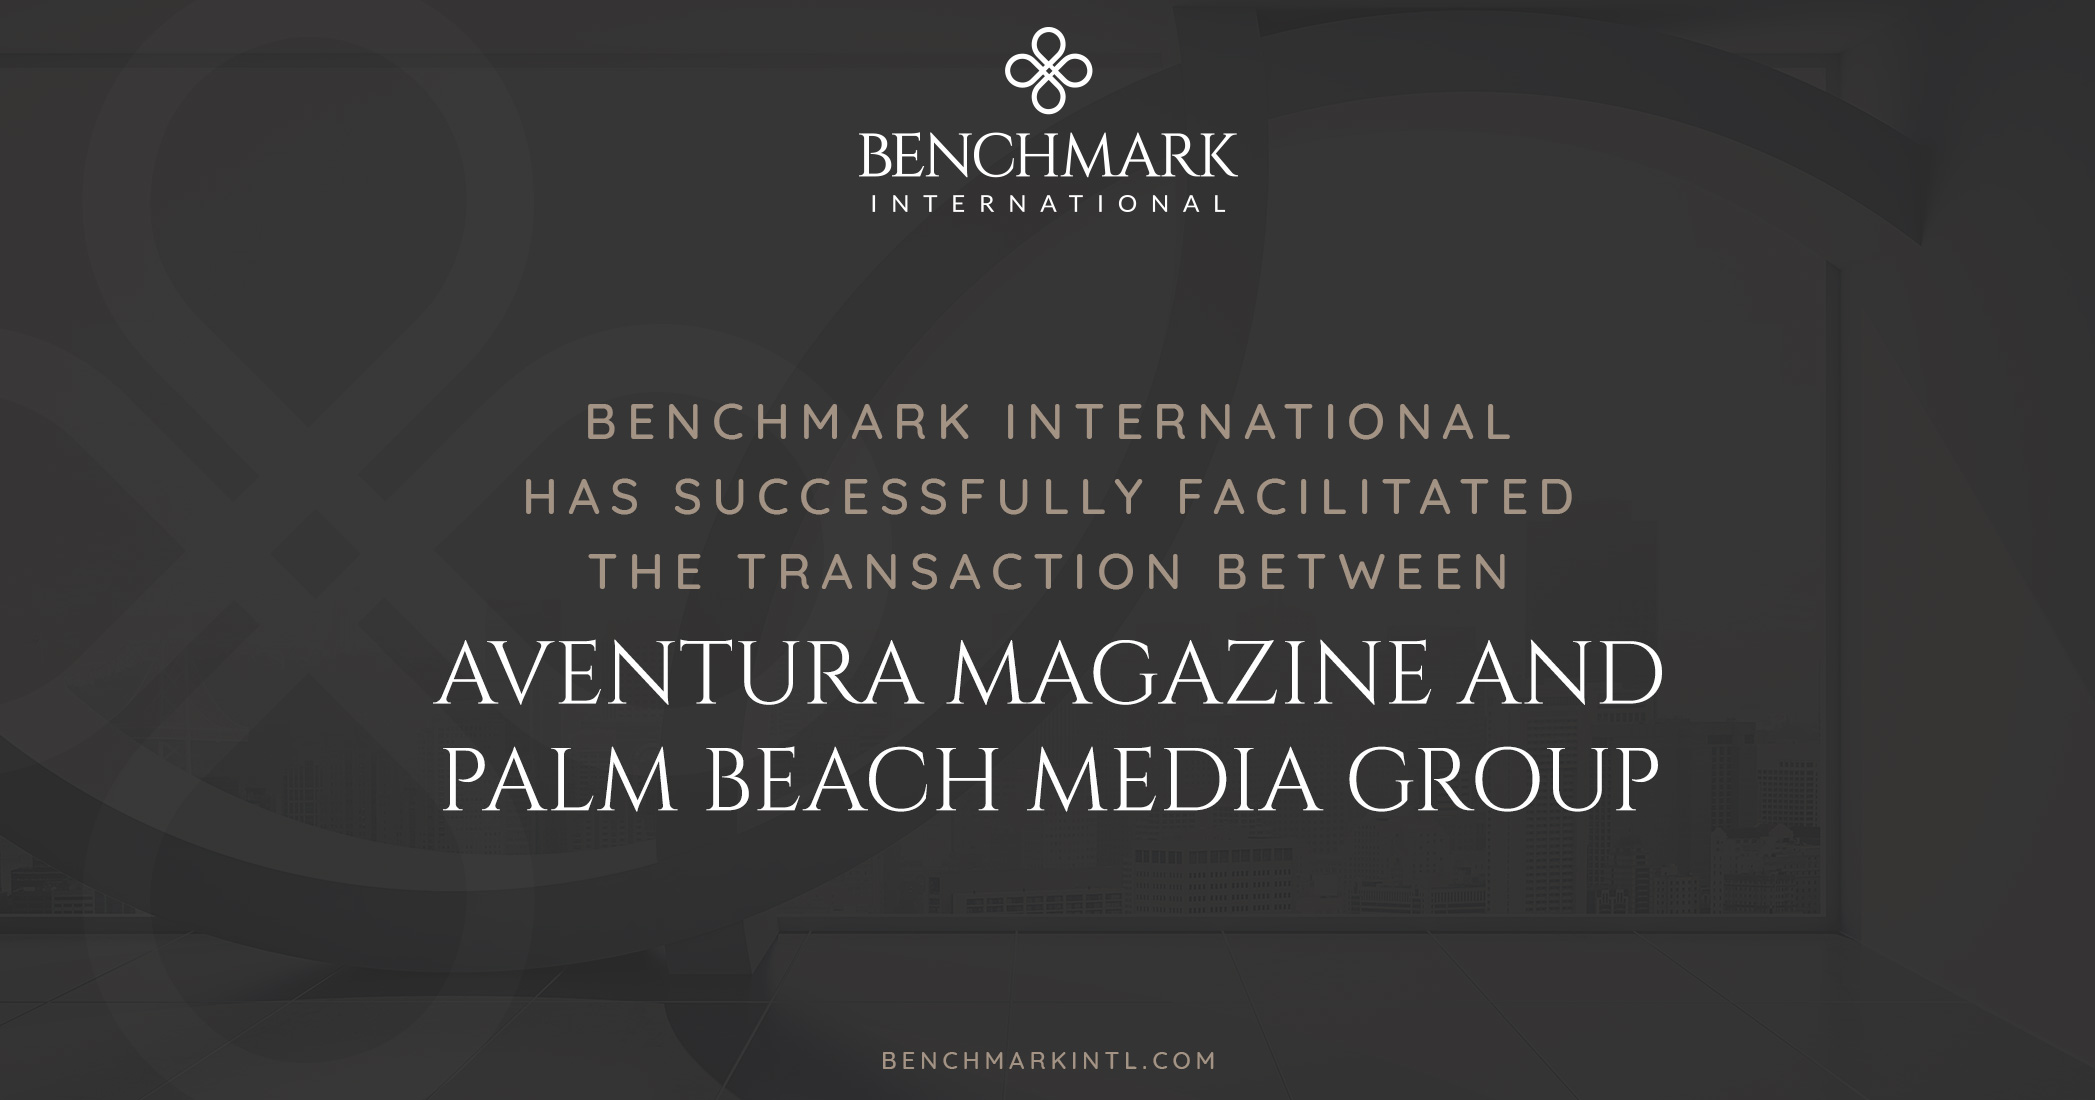 Benchmark International Successfully Facilitated the Transaction Between Aventura Magazine and Palm Beach Media Group